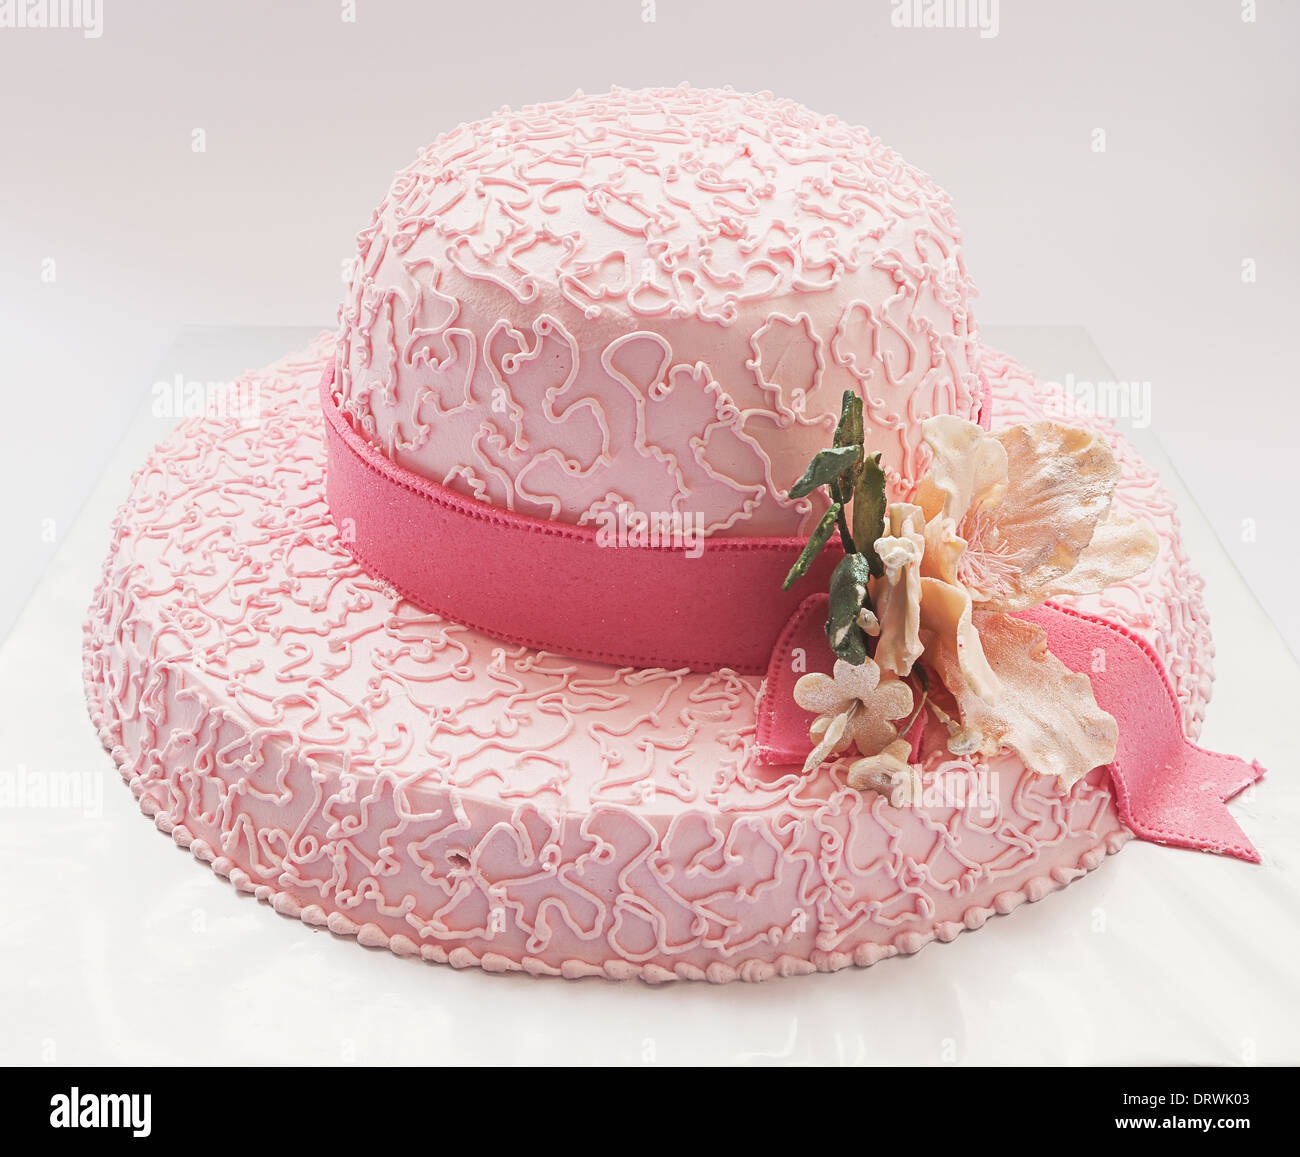 Stupendous Birthday Cake Looks Like Hat In Pink Color And Flower Made Of Funny Birthday Cards Online Alyptdamsfinfo